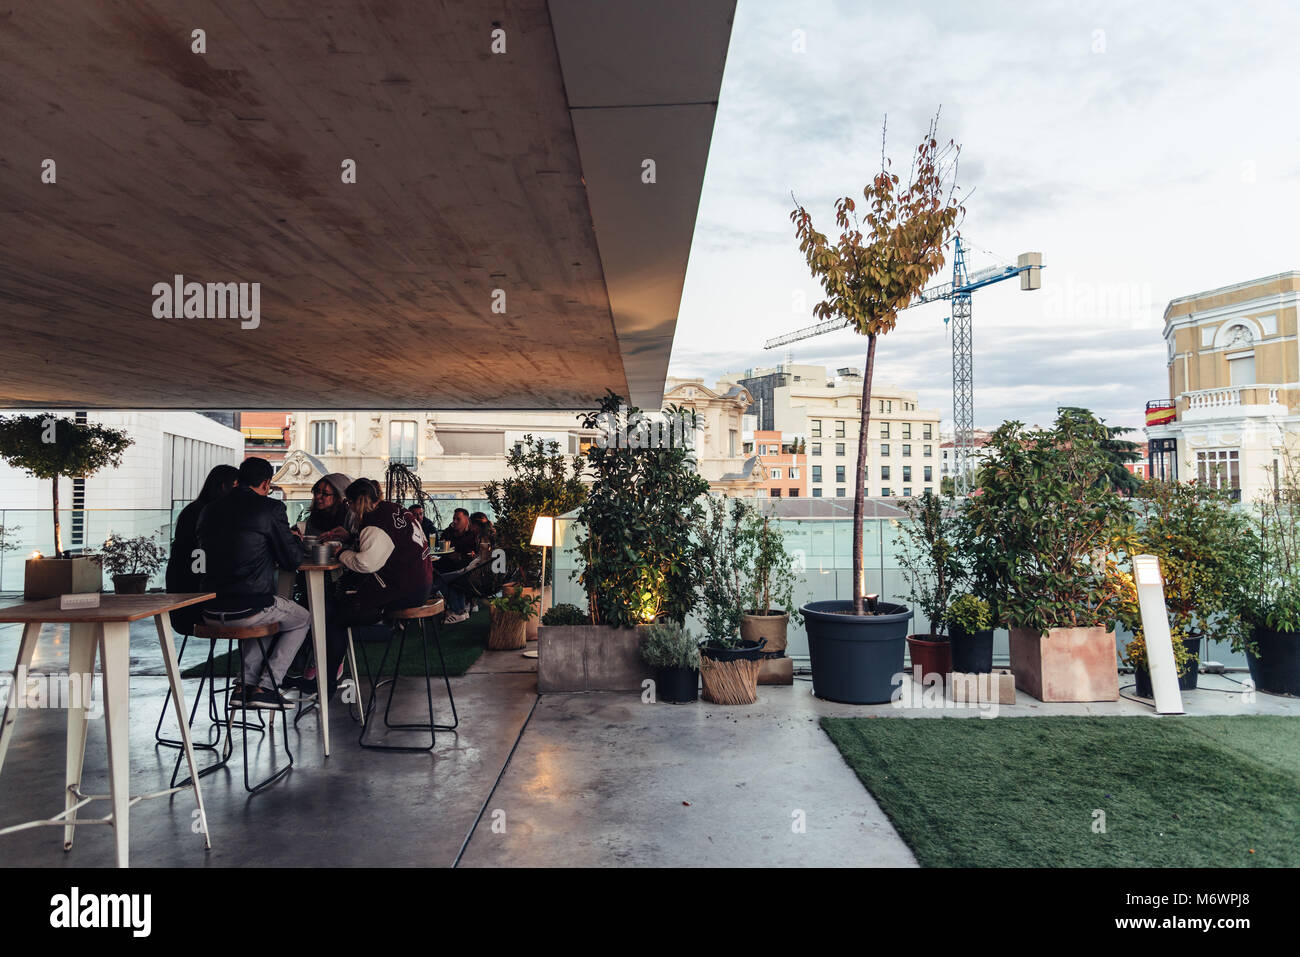 Rooftop terrace garden stock photos rooftop terrace - Garden center madrid ...